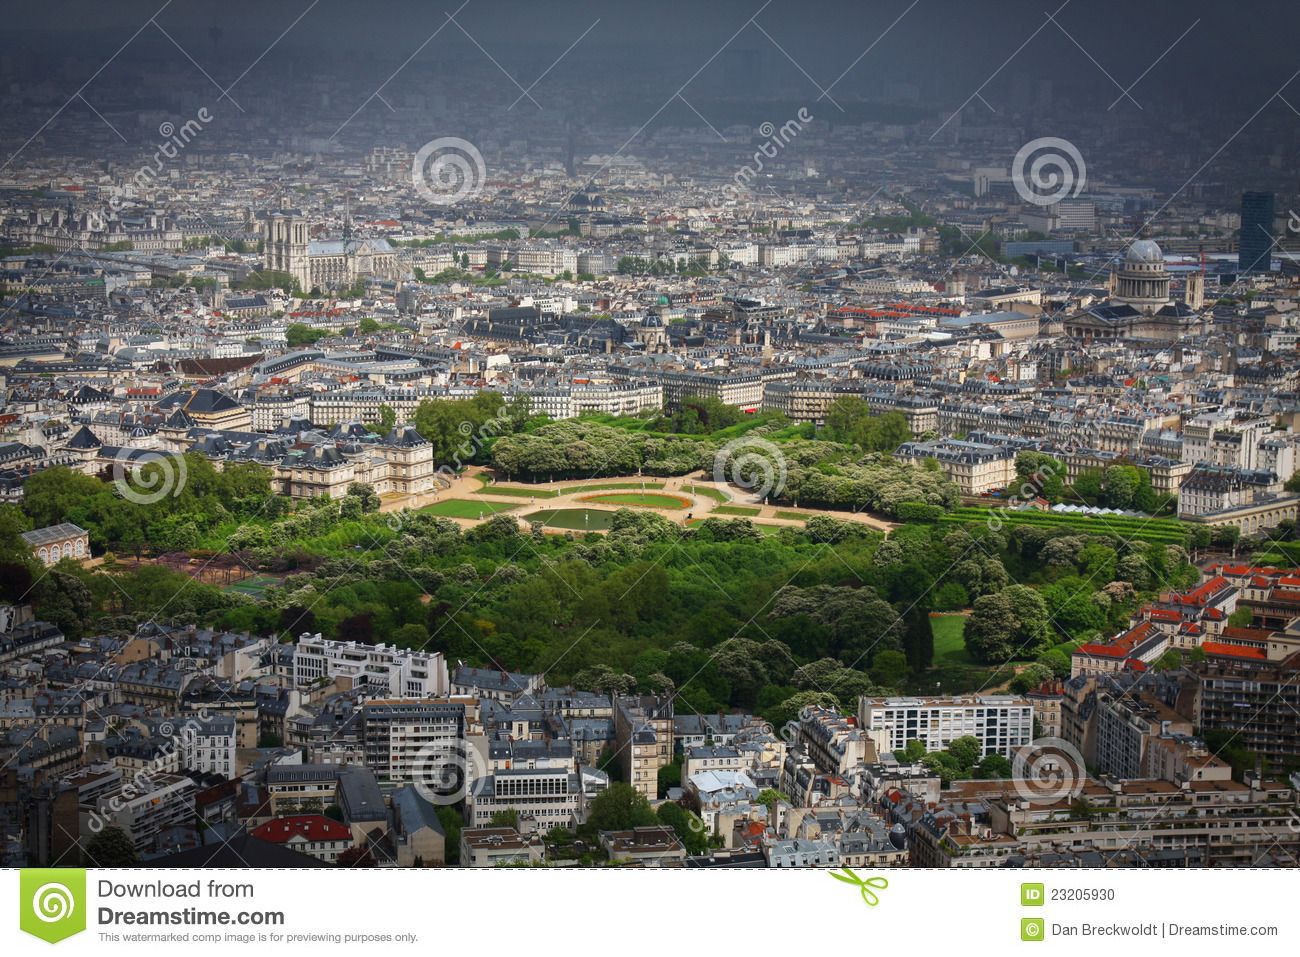 Jardin du luxembourg in paris stock photo image 23205930 for Jardin luxemburgo